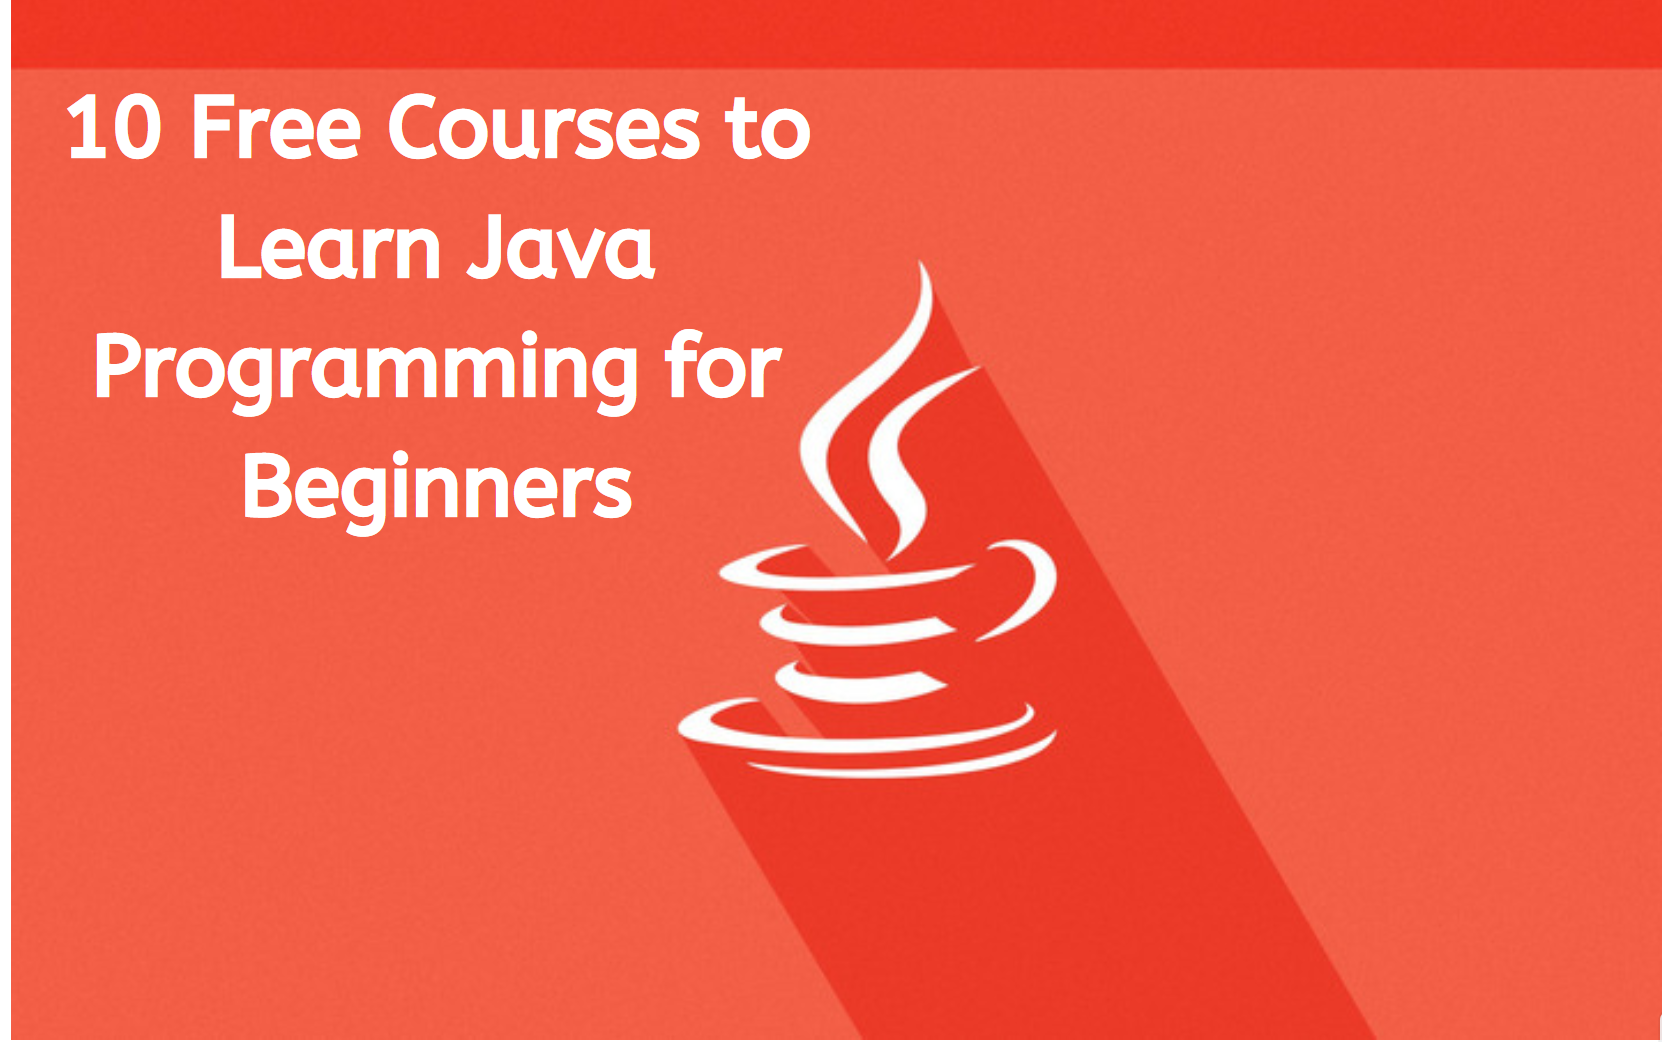 My favorite free courses to learn Java in depth - Javarevisited - Medium